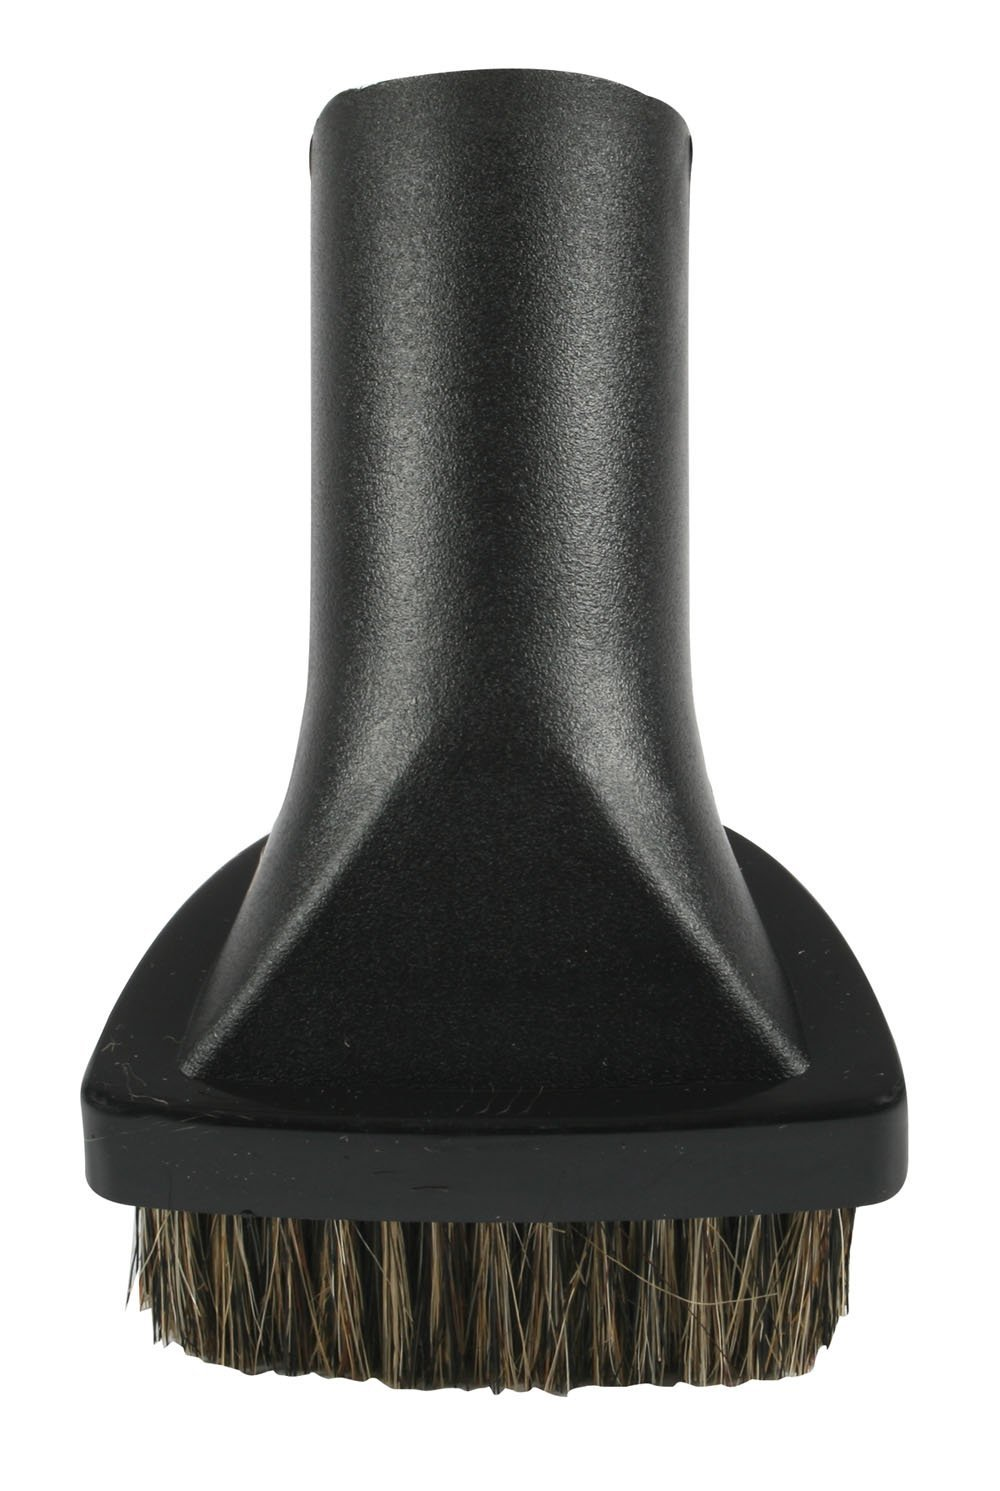 Cen-Tec Systems 34828 Universal Dusting Brush